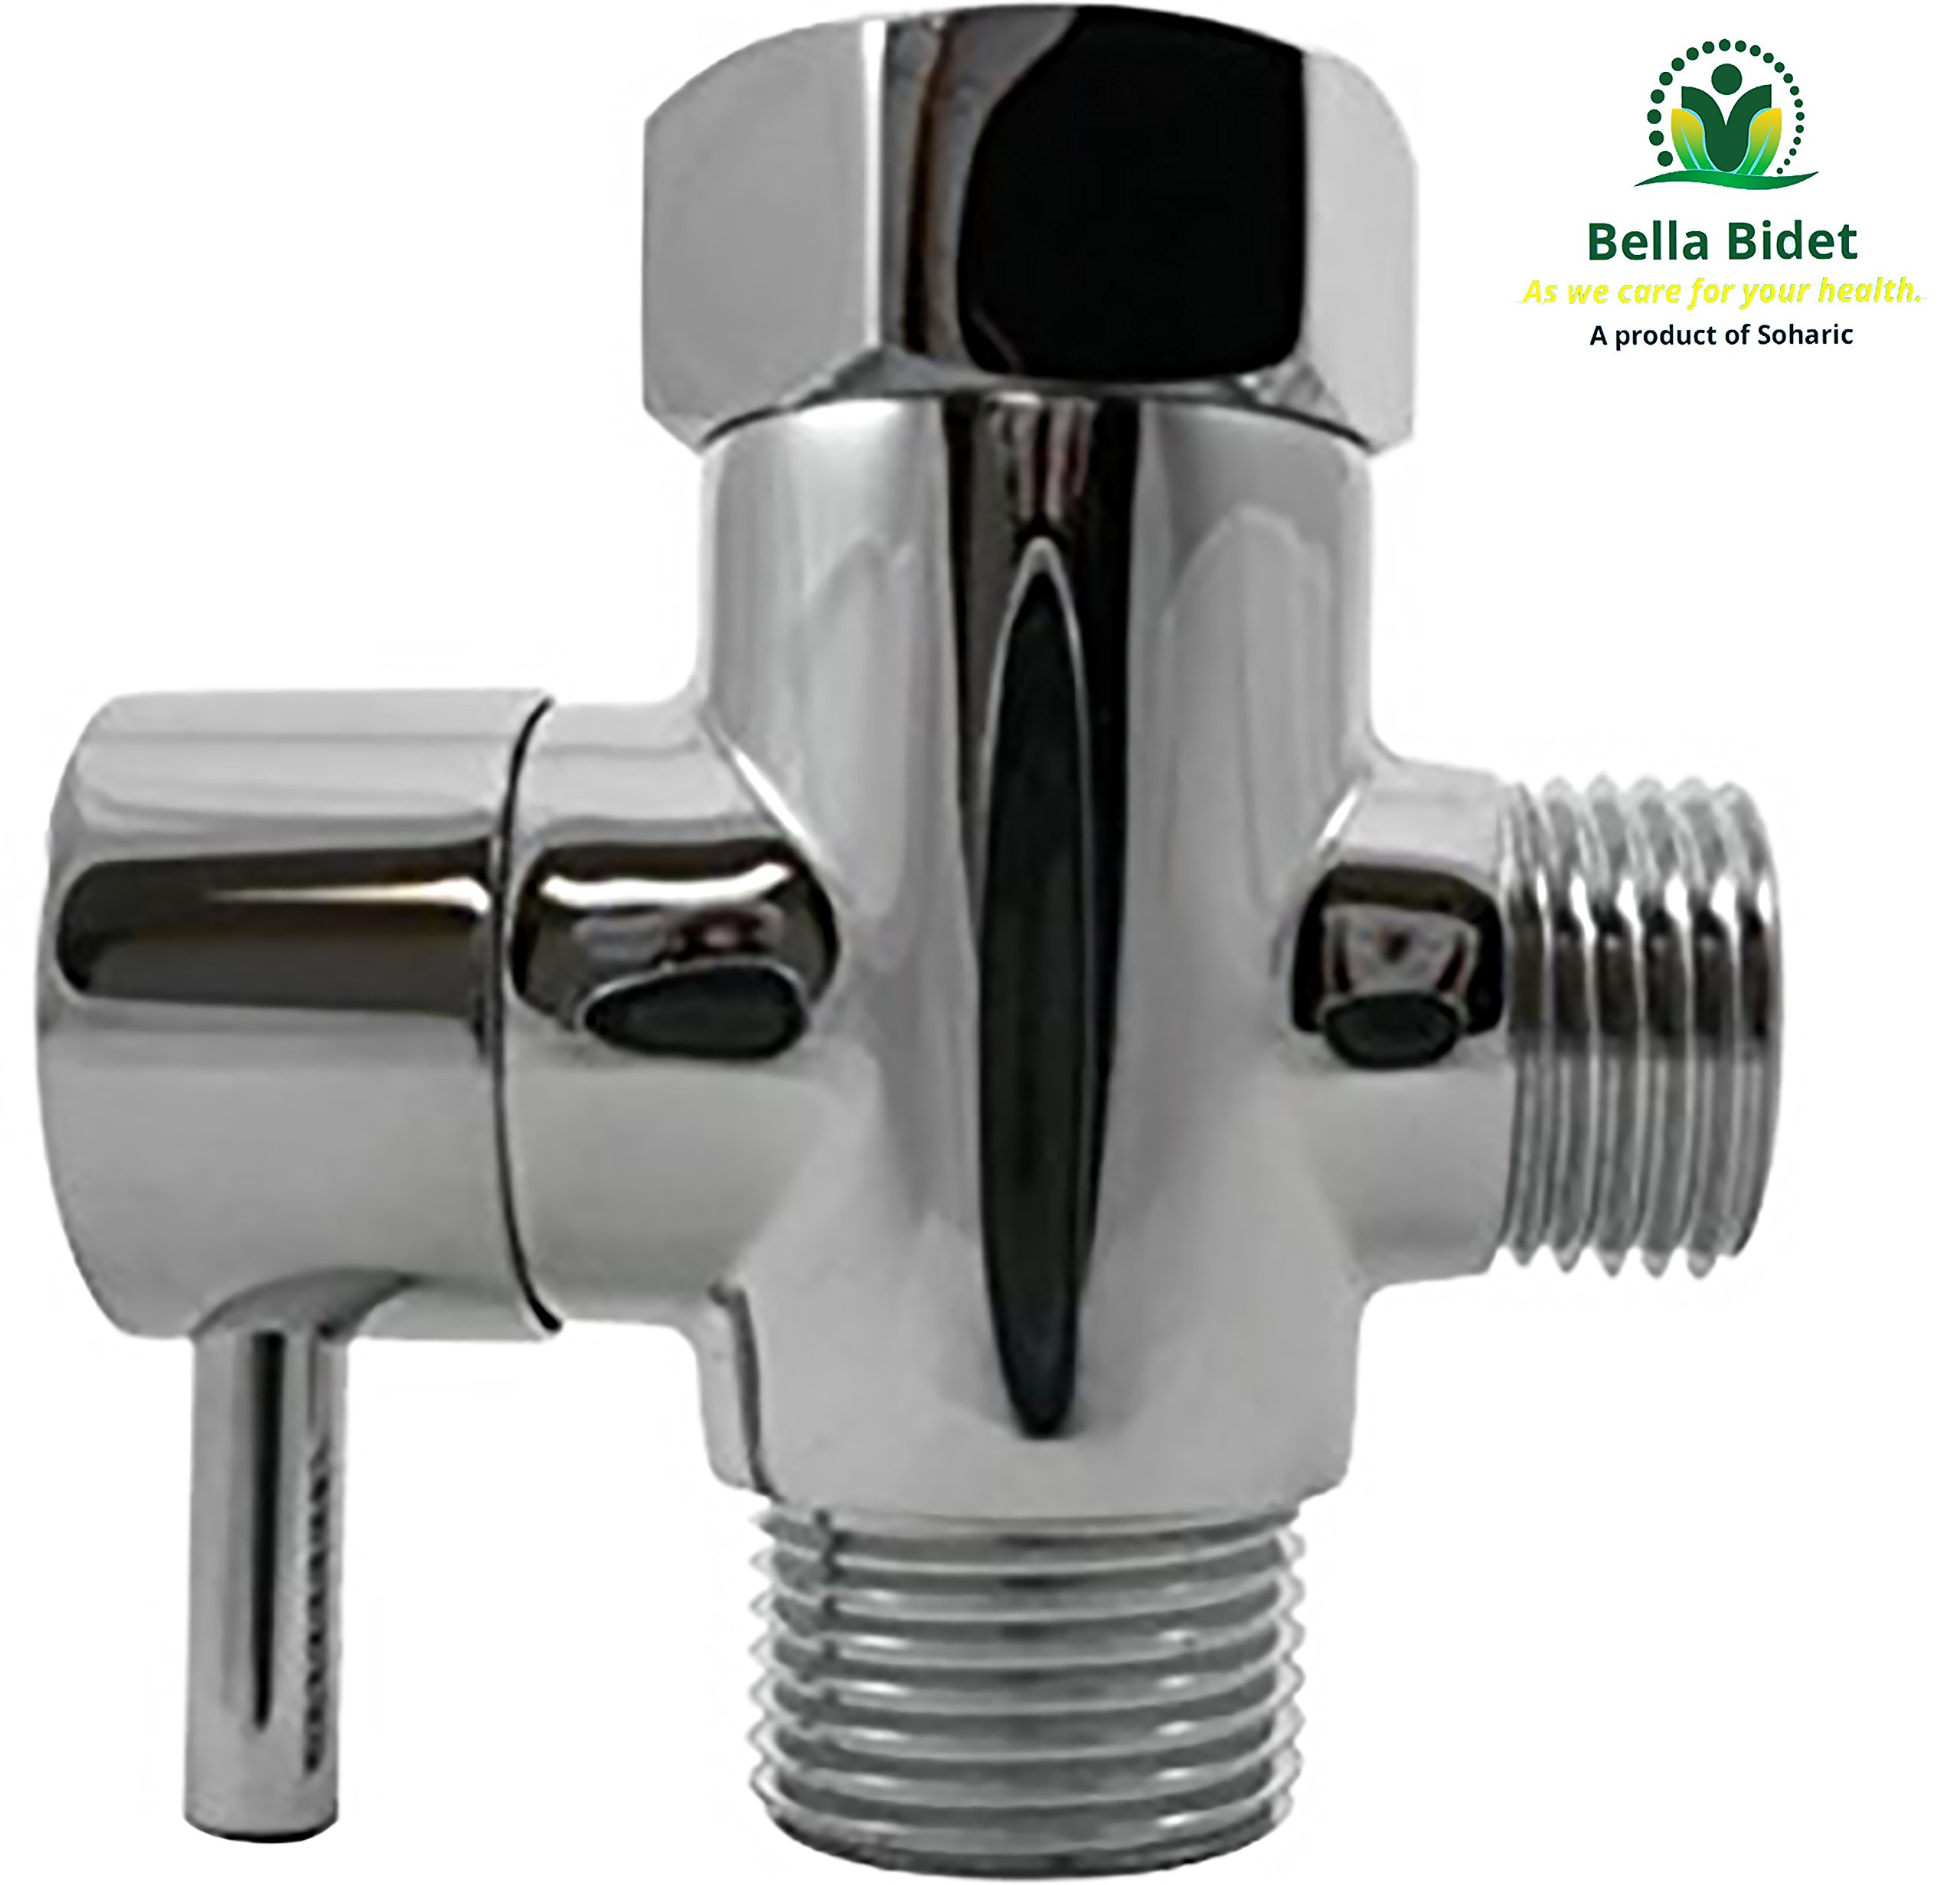 Bella Bidet Solid Brass Metal T-adapter with Shut-off Valve, 3-way Tee Connector for Handheld Bidet 15/16'' and 1/2'' IPS, Chrome Finish by Soharic